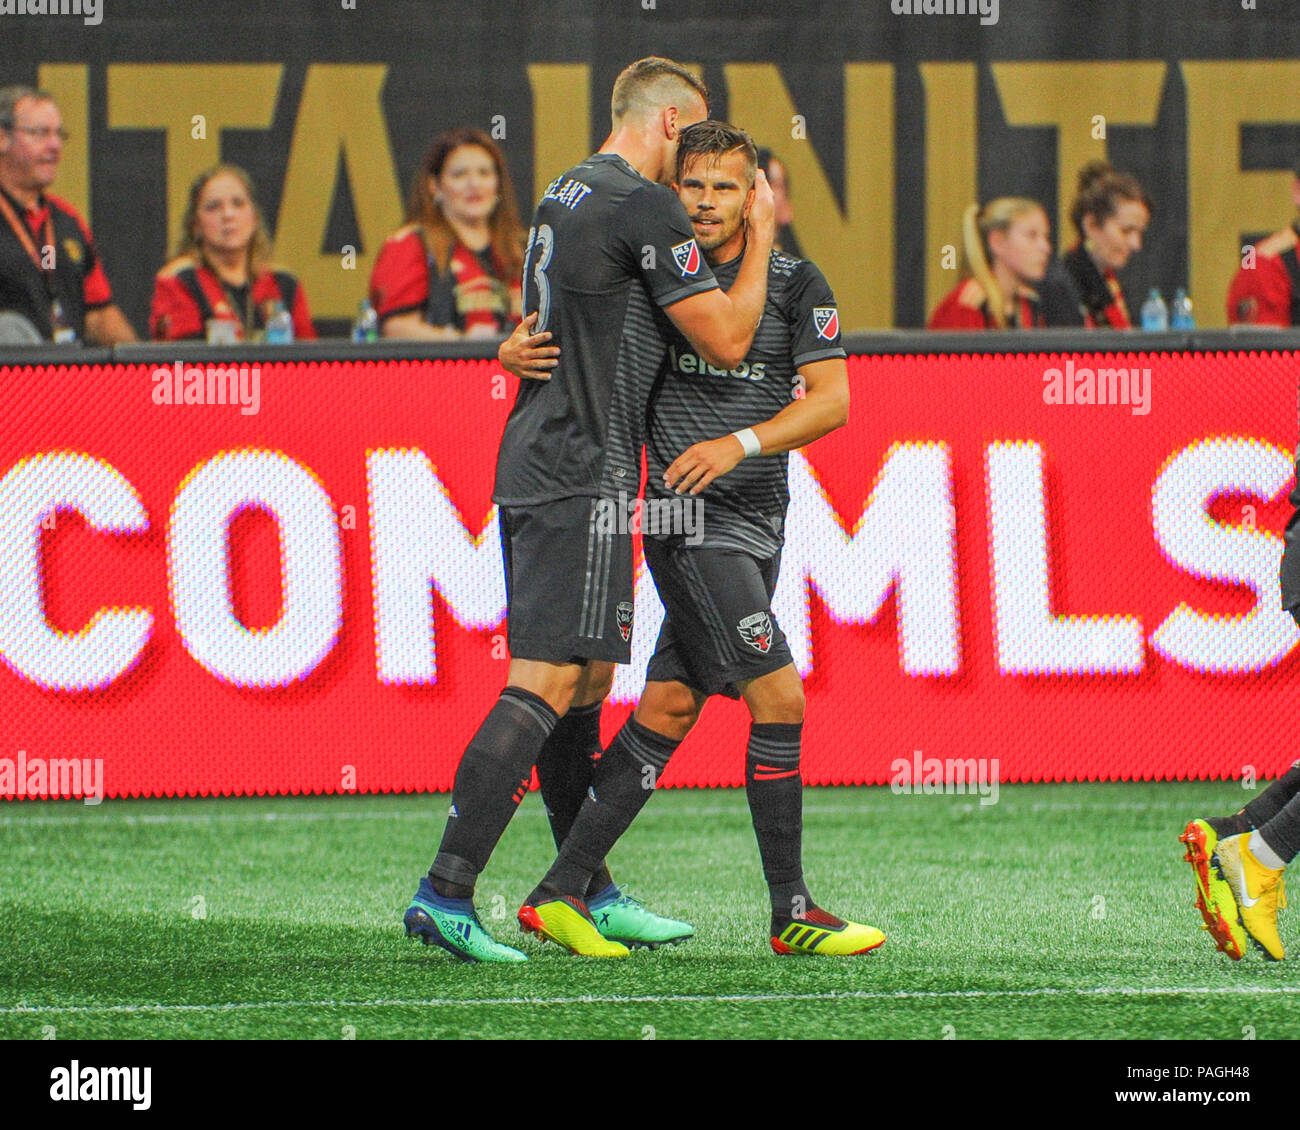 54af7862230 Dc United Goal Stock Photos   Dc United Goal Stock Images - Alamy